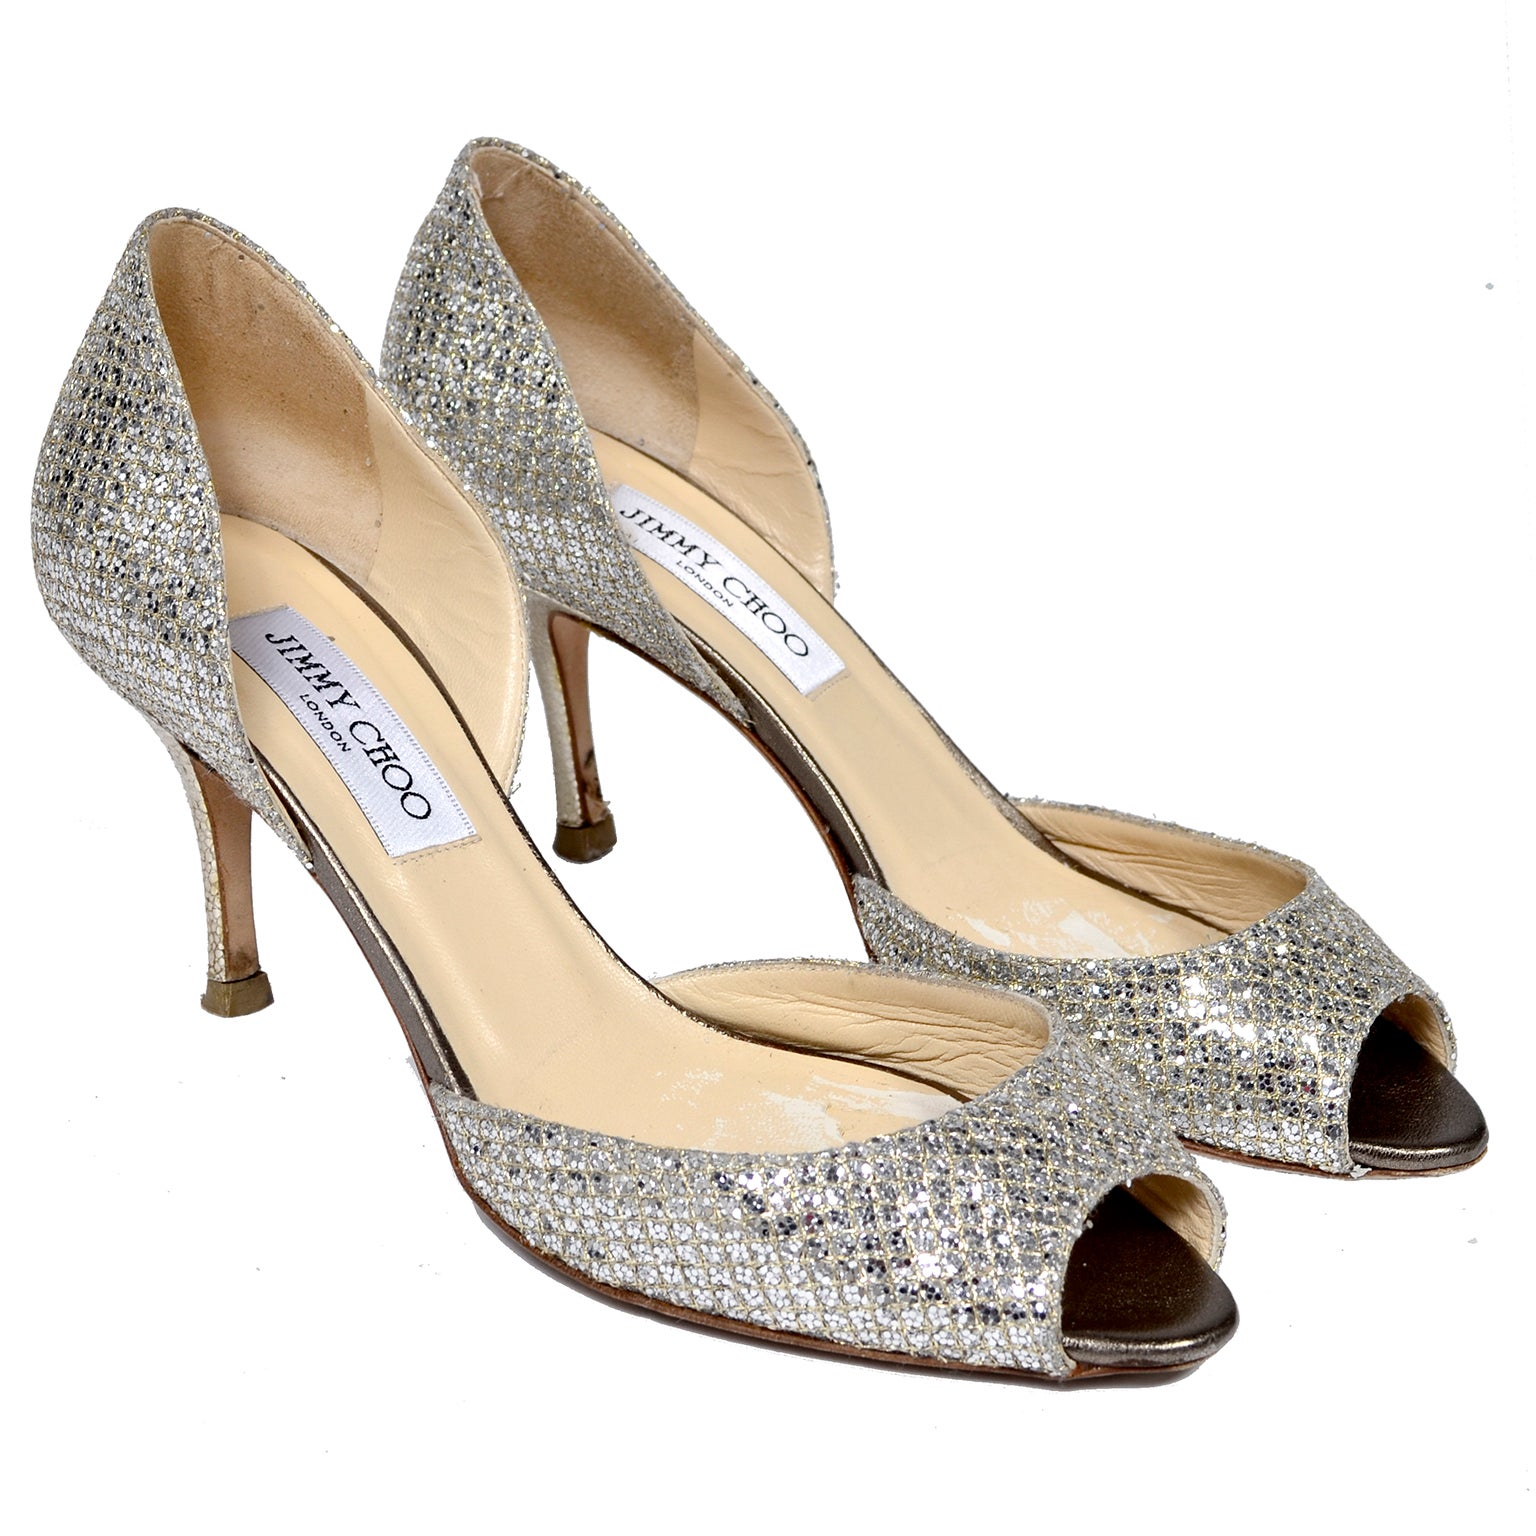 Jimmy Choo Shoes D'Orsay Pumps in Glitter Champagne Size 37.5 W/ Box & Bag